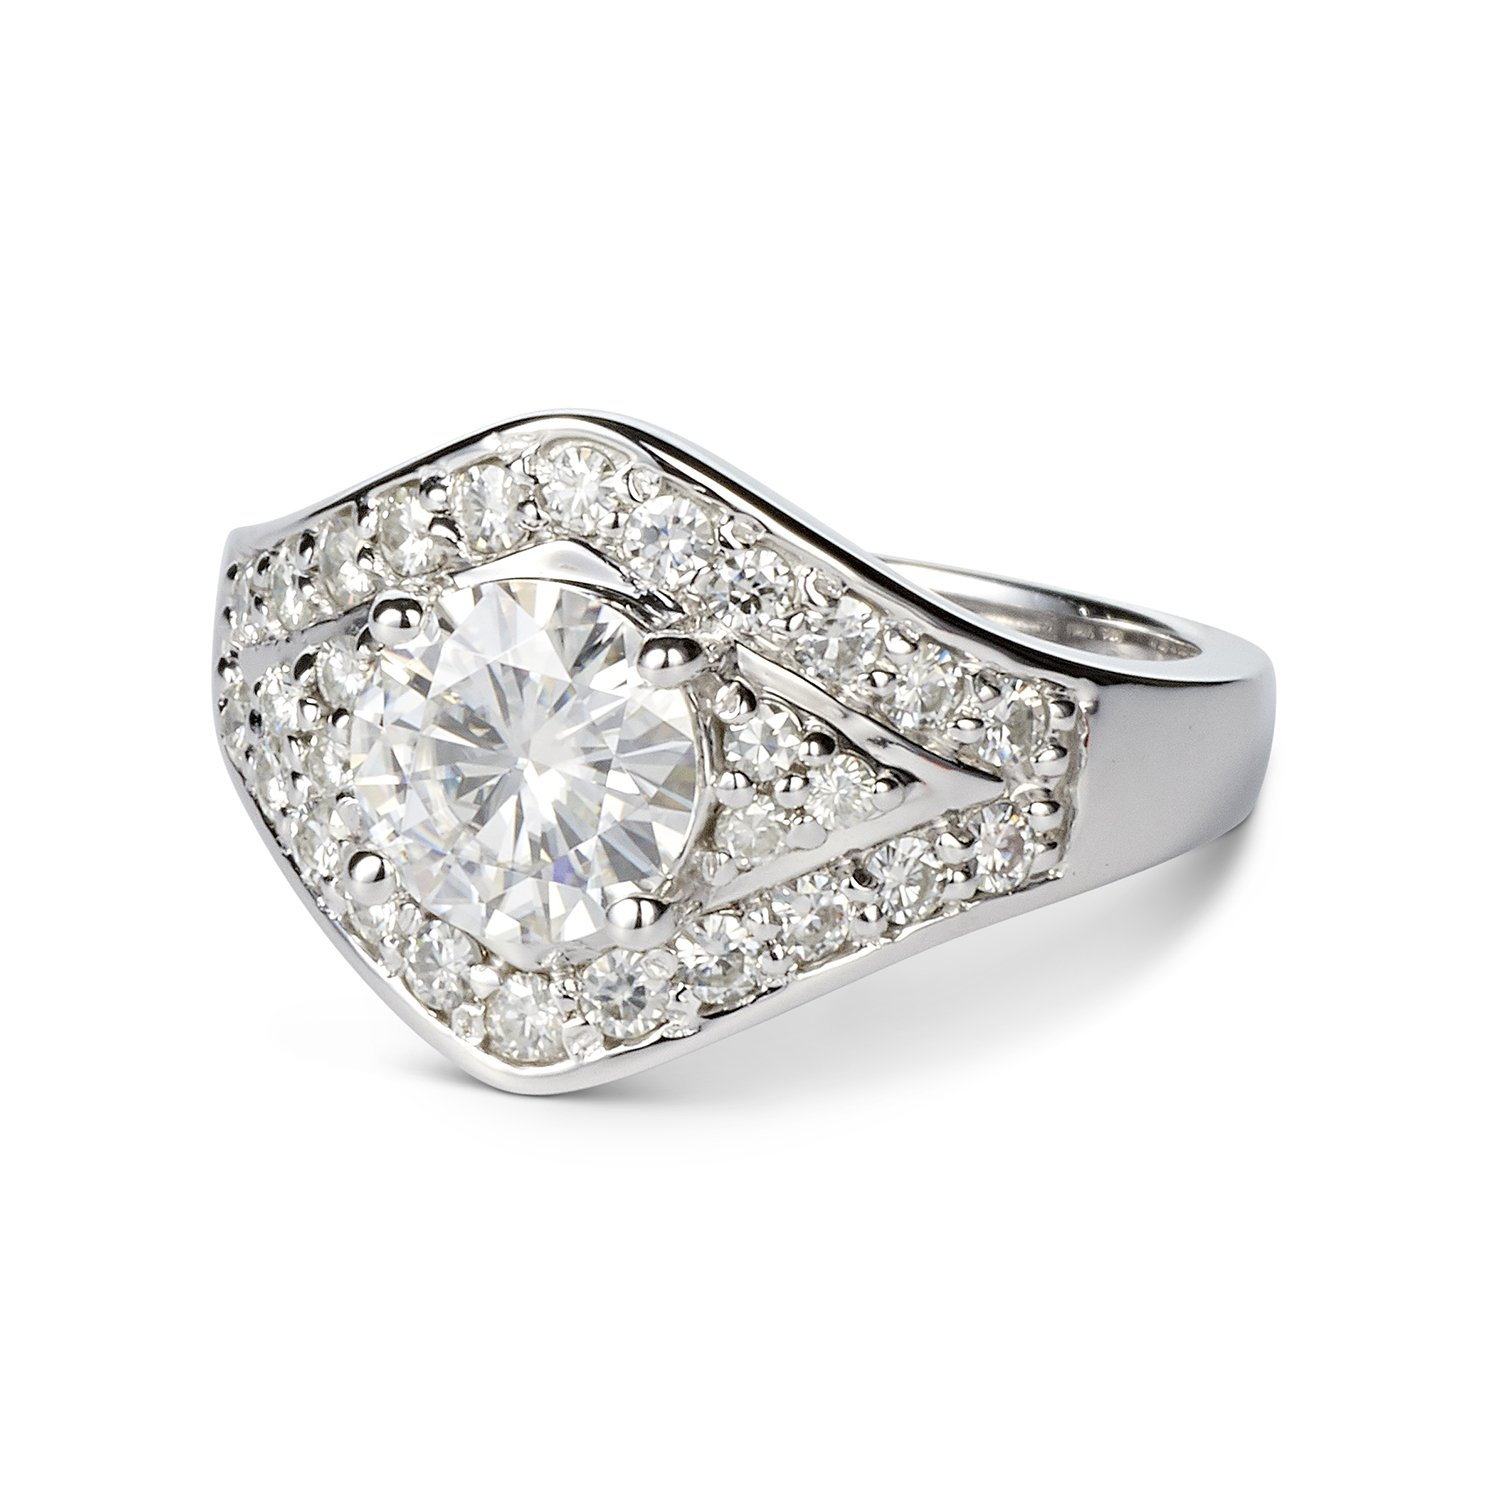 Forever One Round 7.0mm Moissanite Ring-size 7, 1.73cttw DEW (G-H-I) By Charles & Colvard